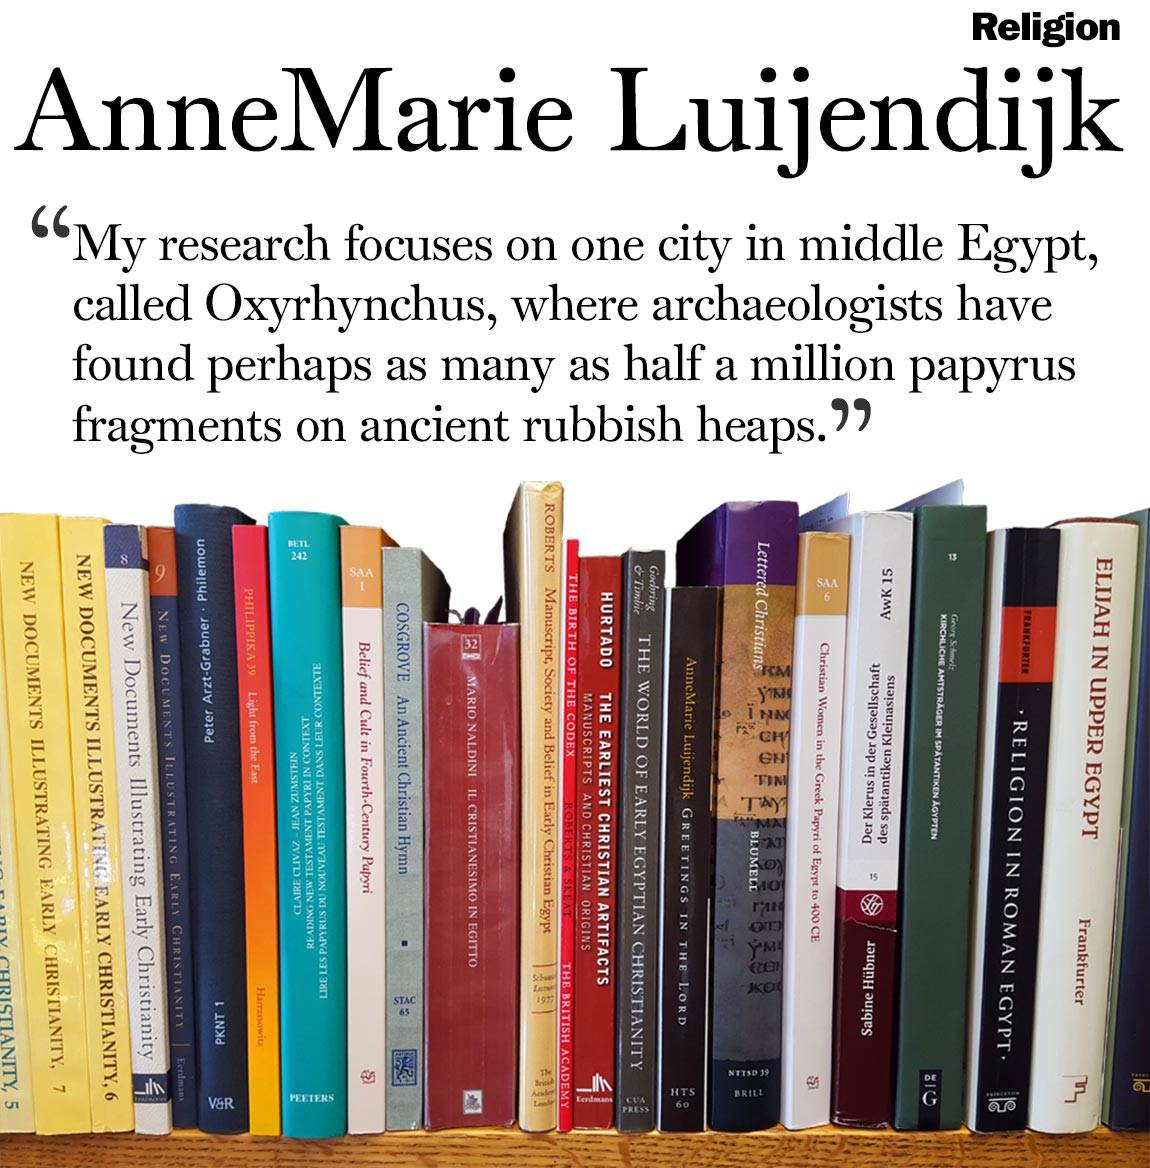 "Faculty Bookshelves 2016 ""Religion; AnneMarie Luijendijk; 'My research focuses on one city in middle Egypt, called Oxyrhynchus, where archaeologists have found perhaps as many as half a million papyrus fragments on ancient rubbish heaps.'"""